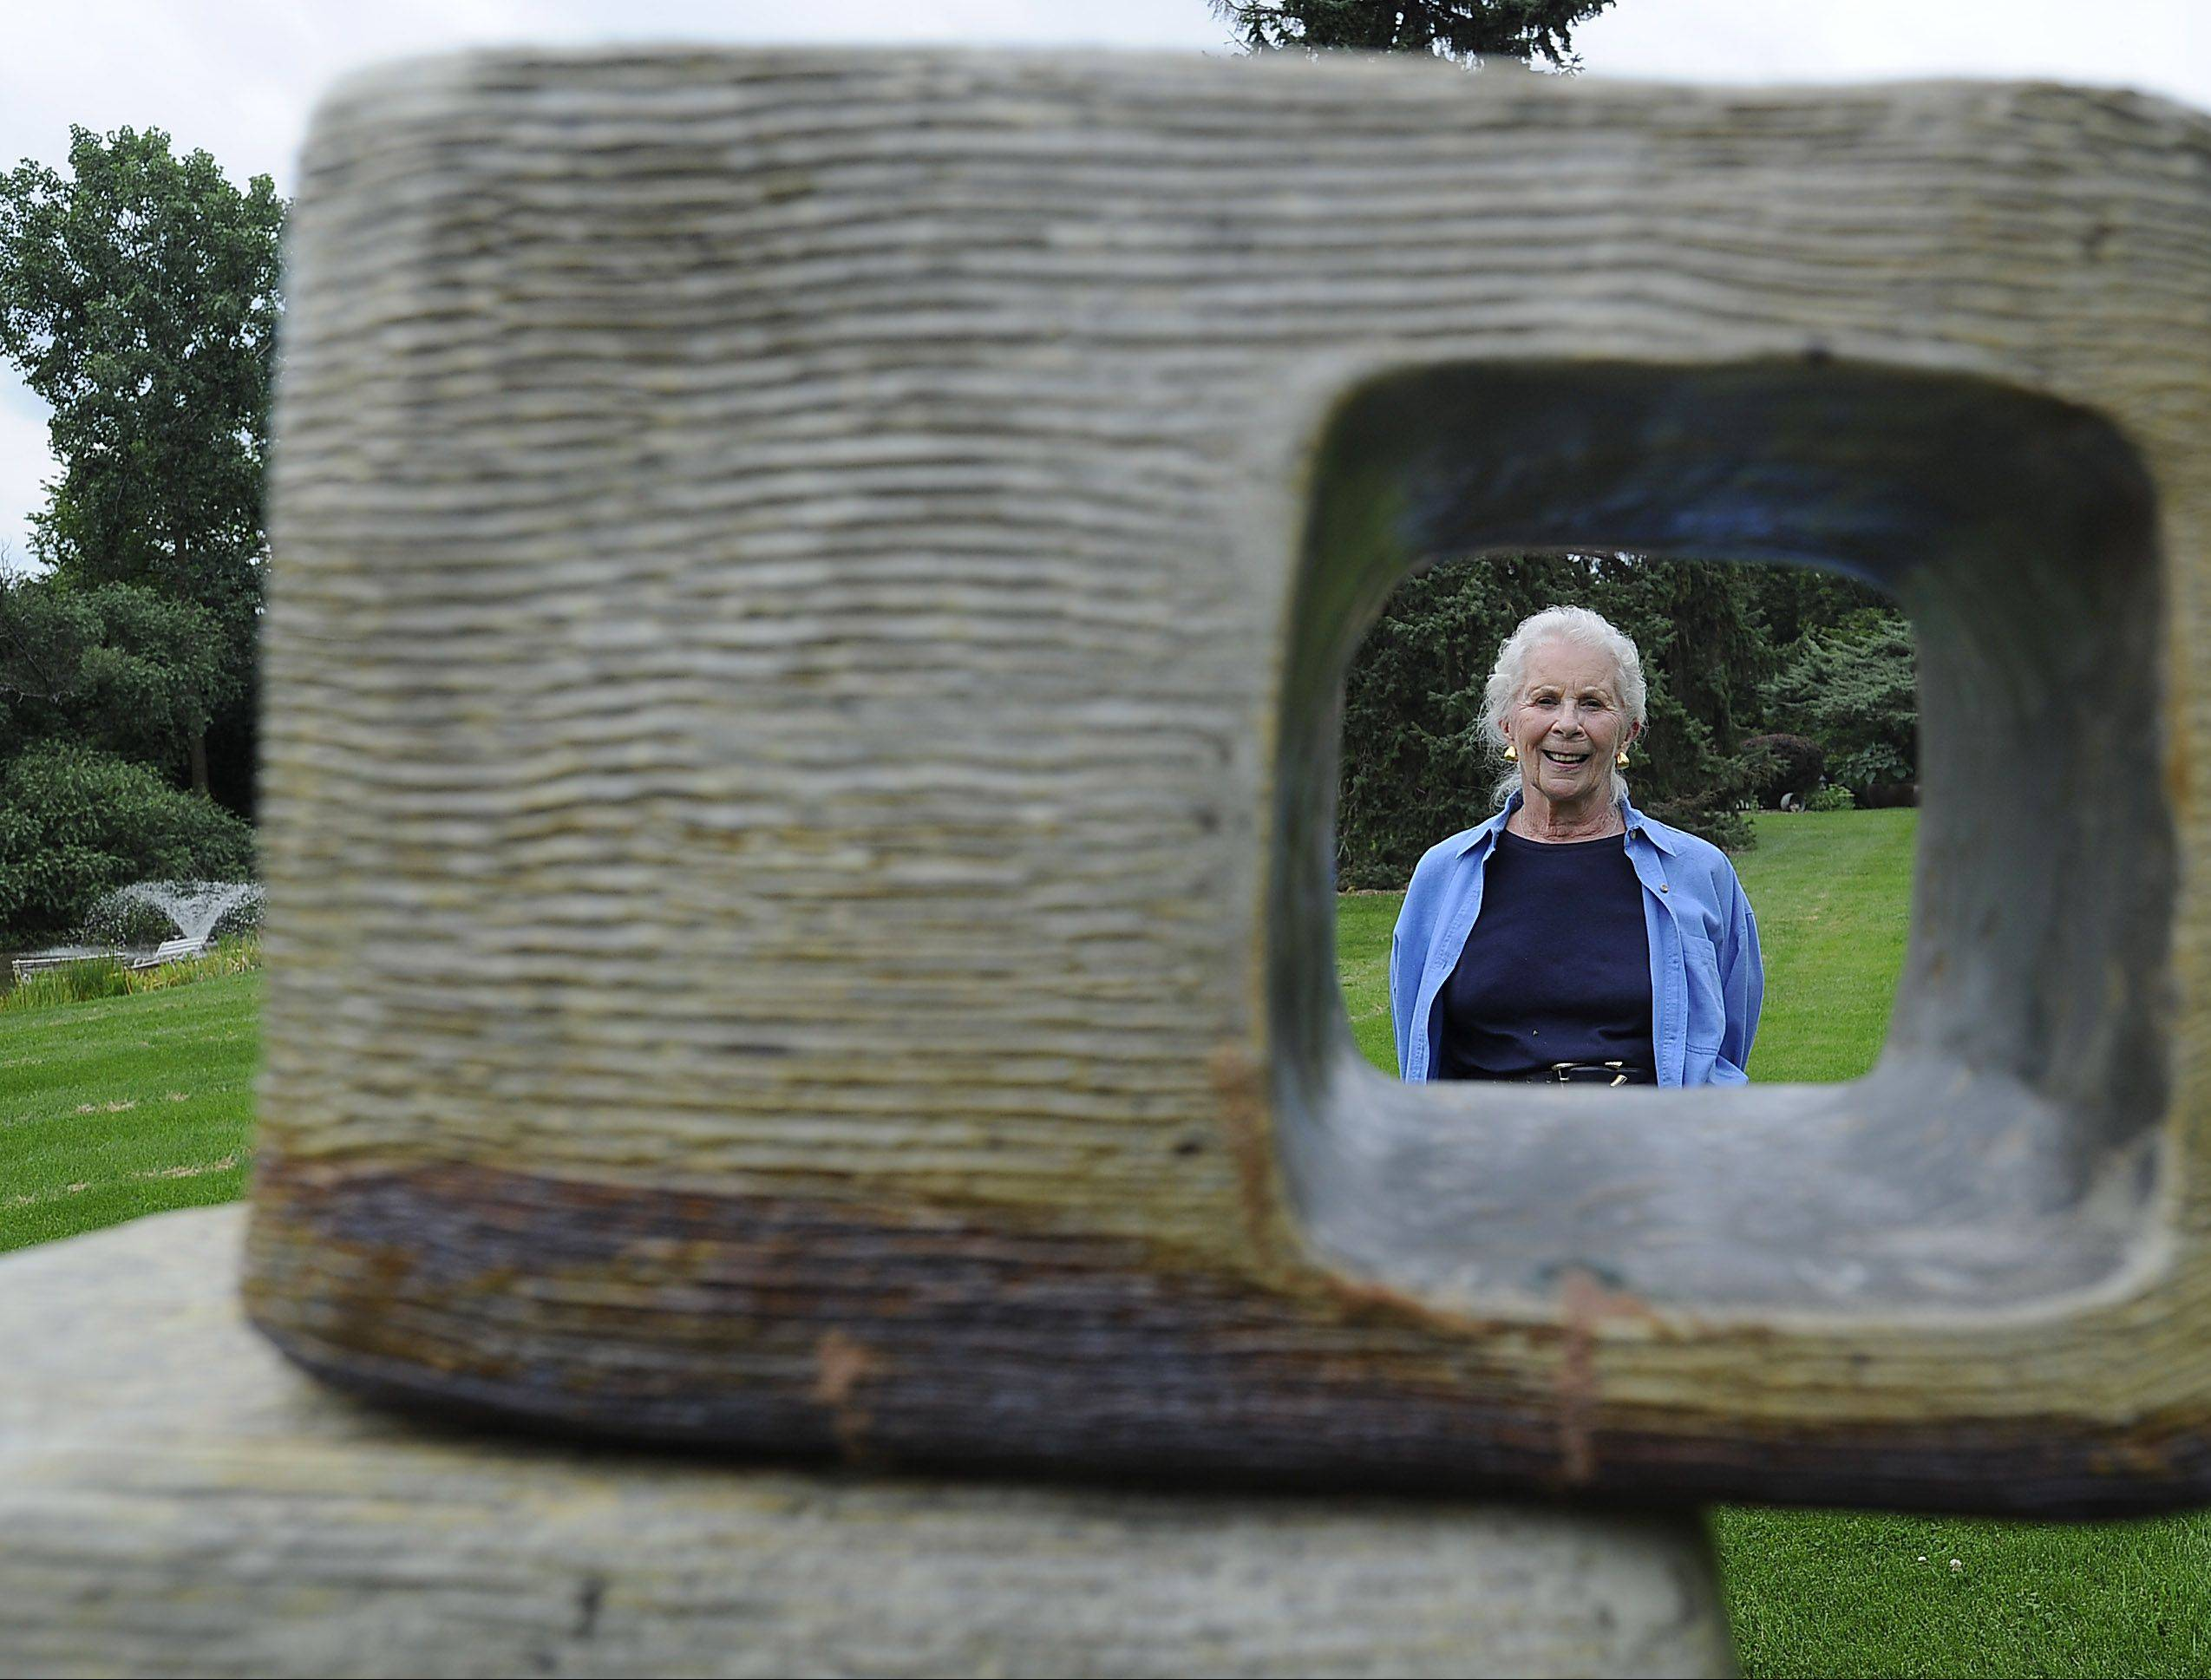 Lynn Rushing of Barrington Hills created a tower of ceramic rectangles for her garden.